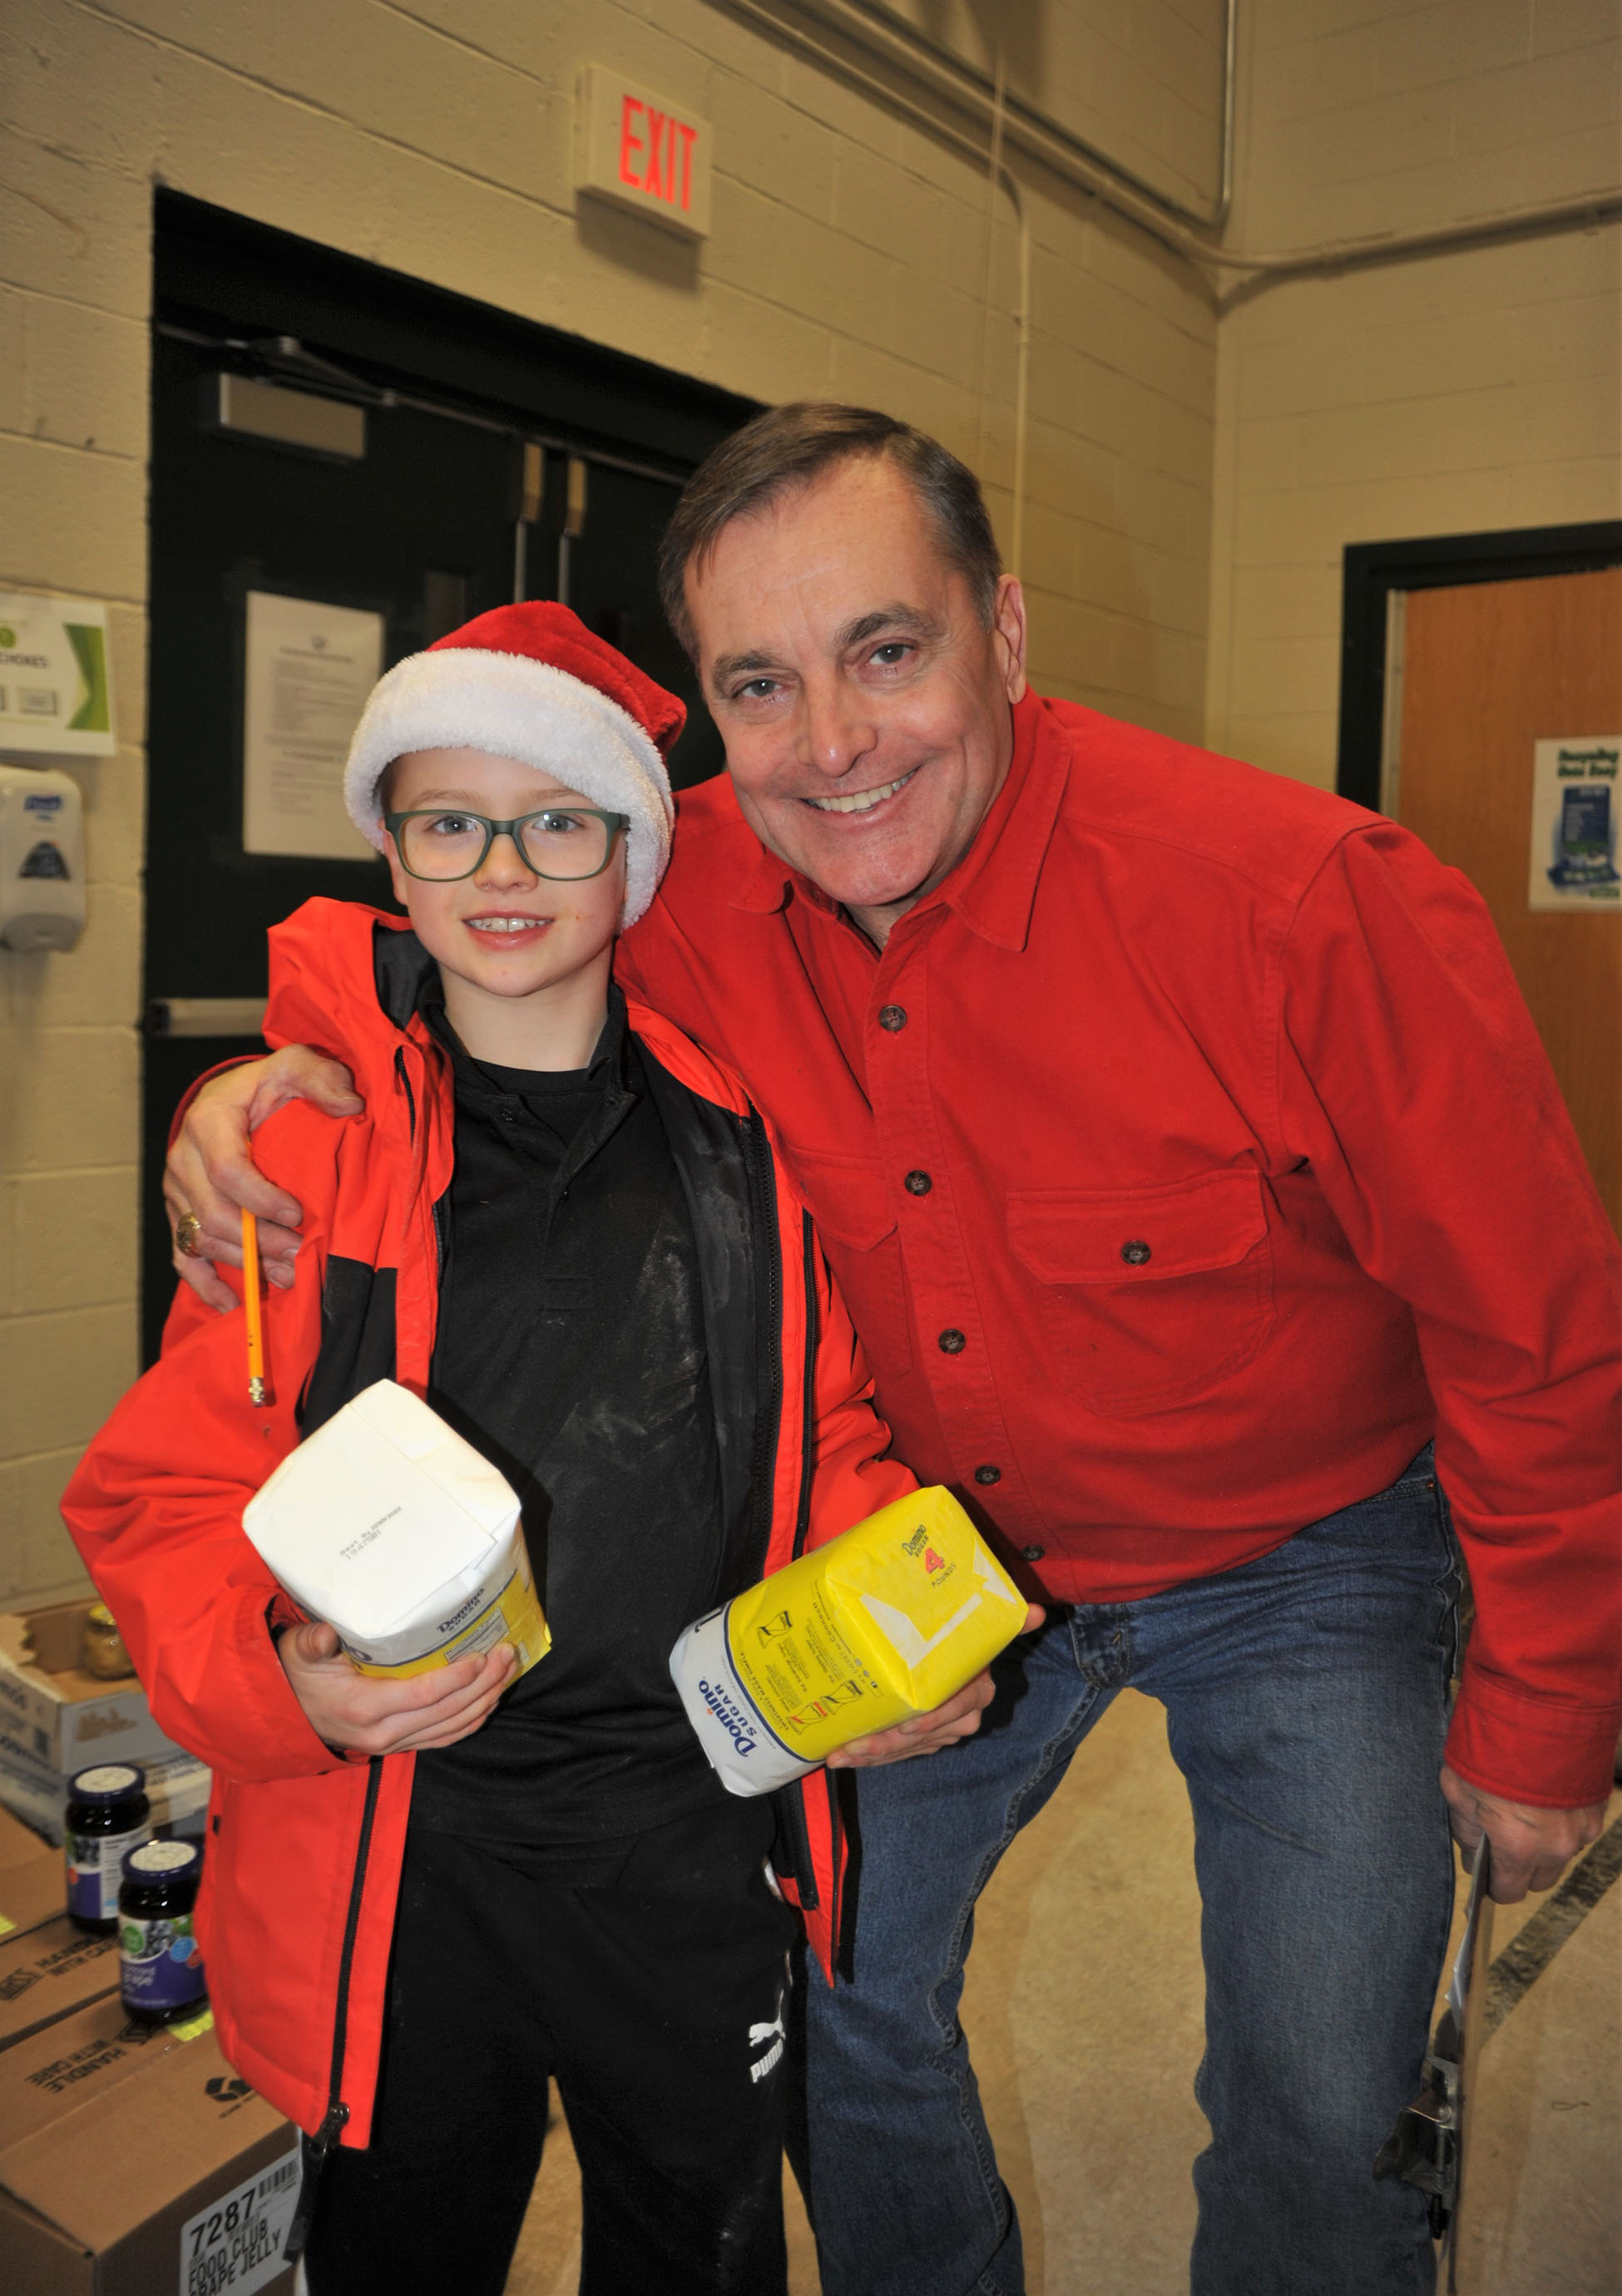 Al Letizio, Jr. at his company's annual food packing event.